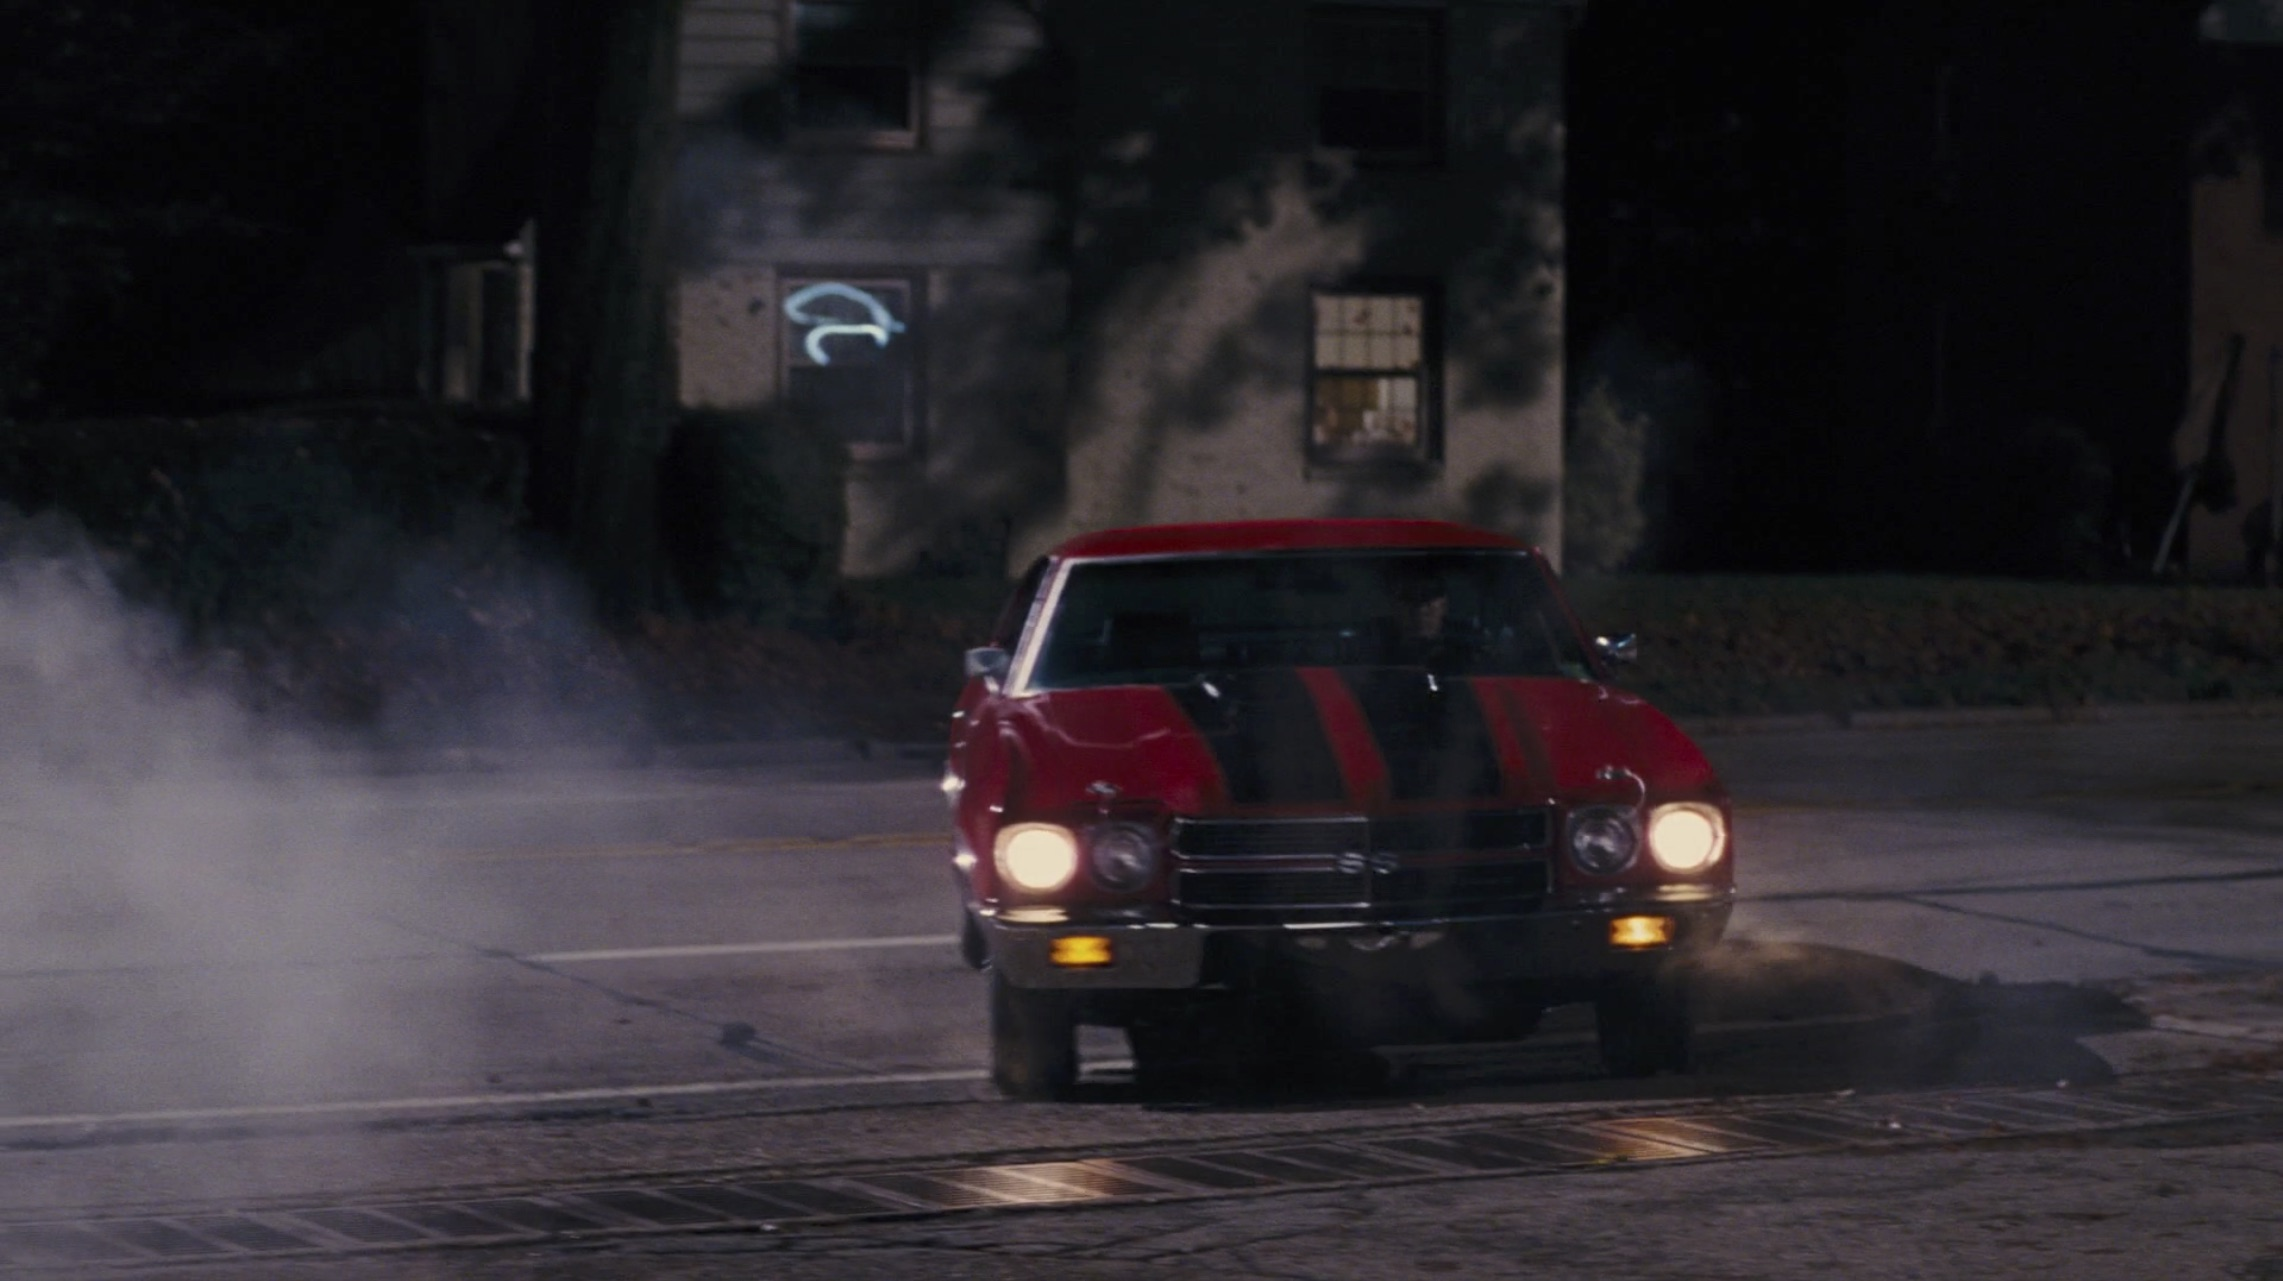 Jack Reacher Chevelle turn